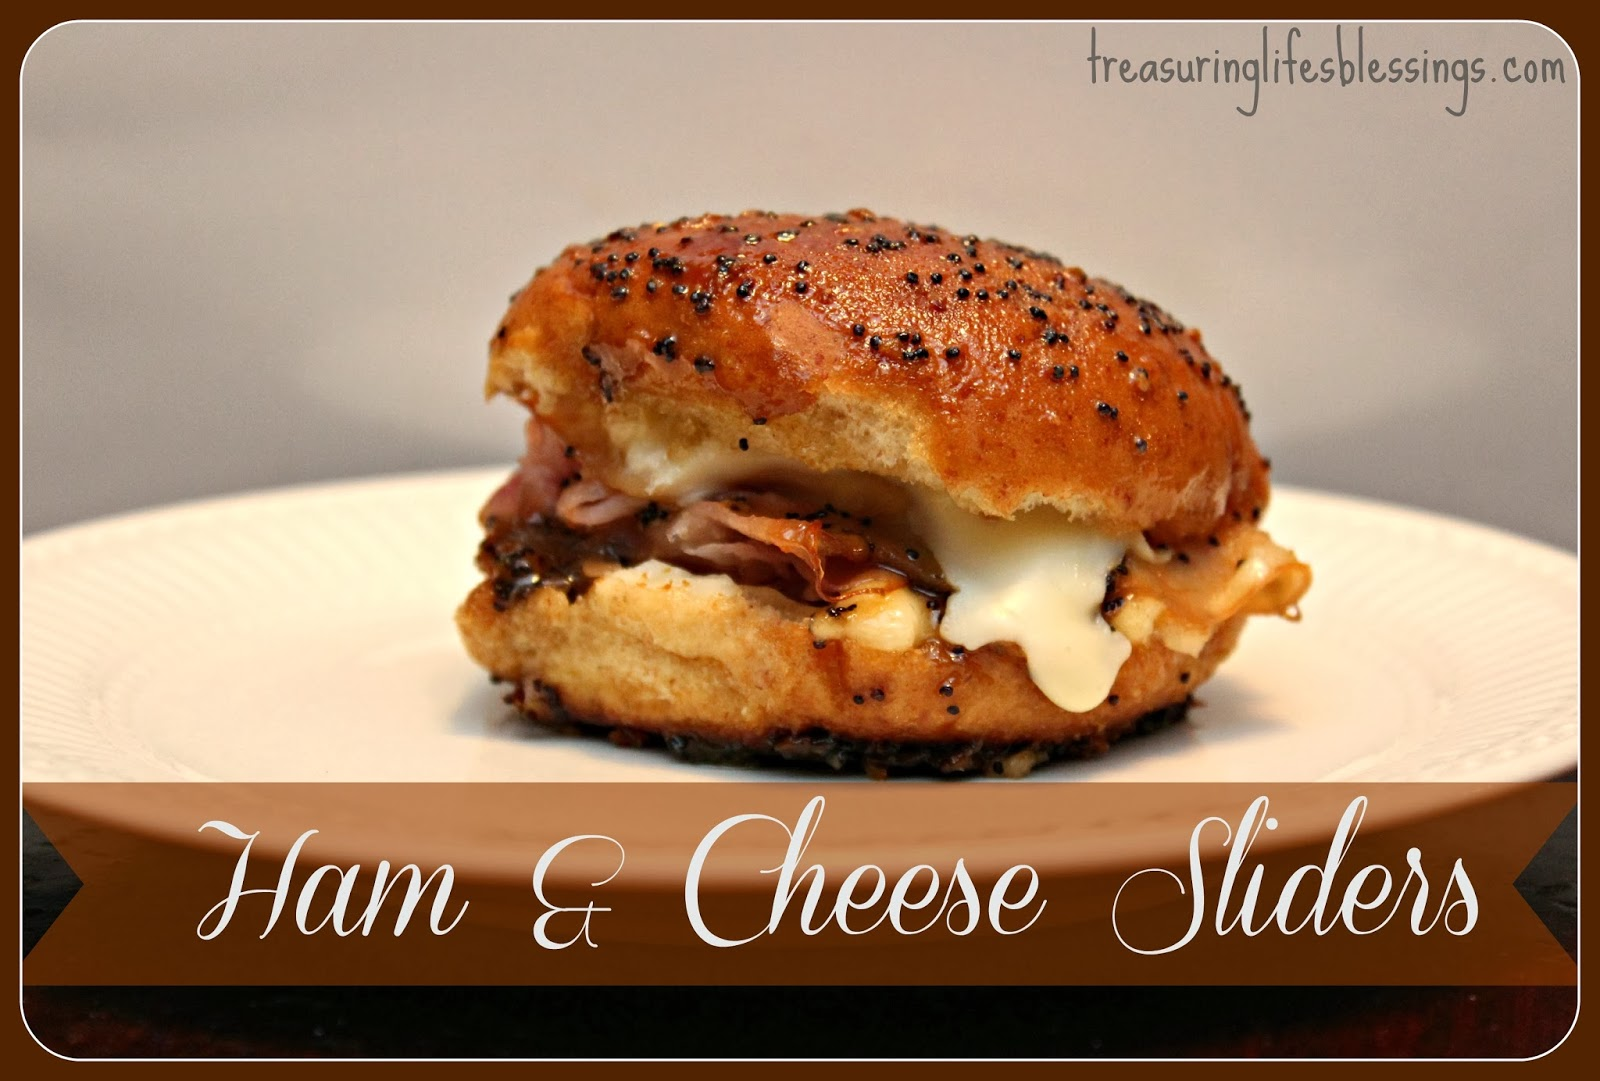 Ham & Cheese Slider